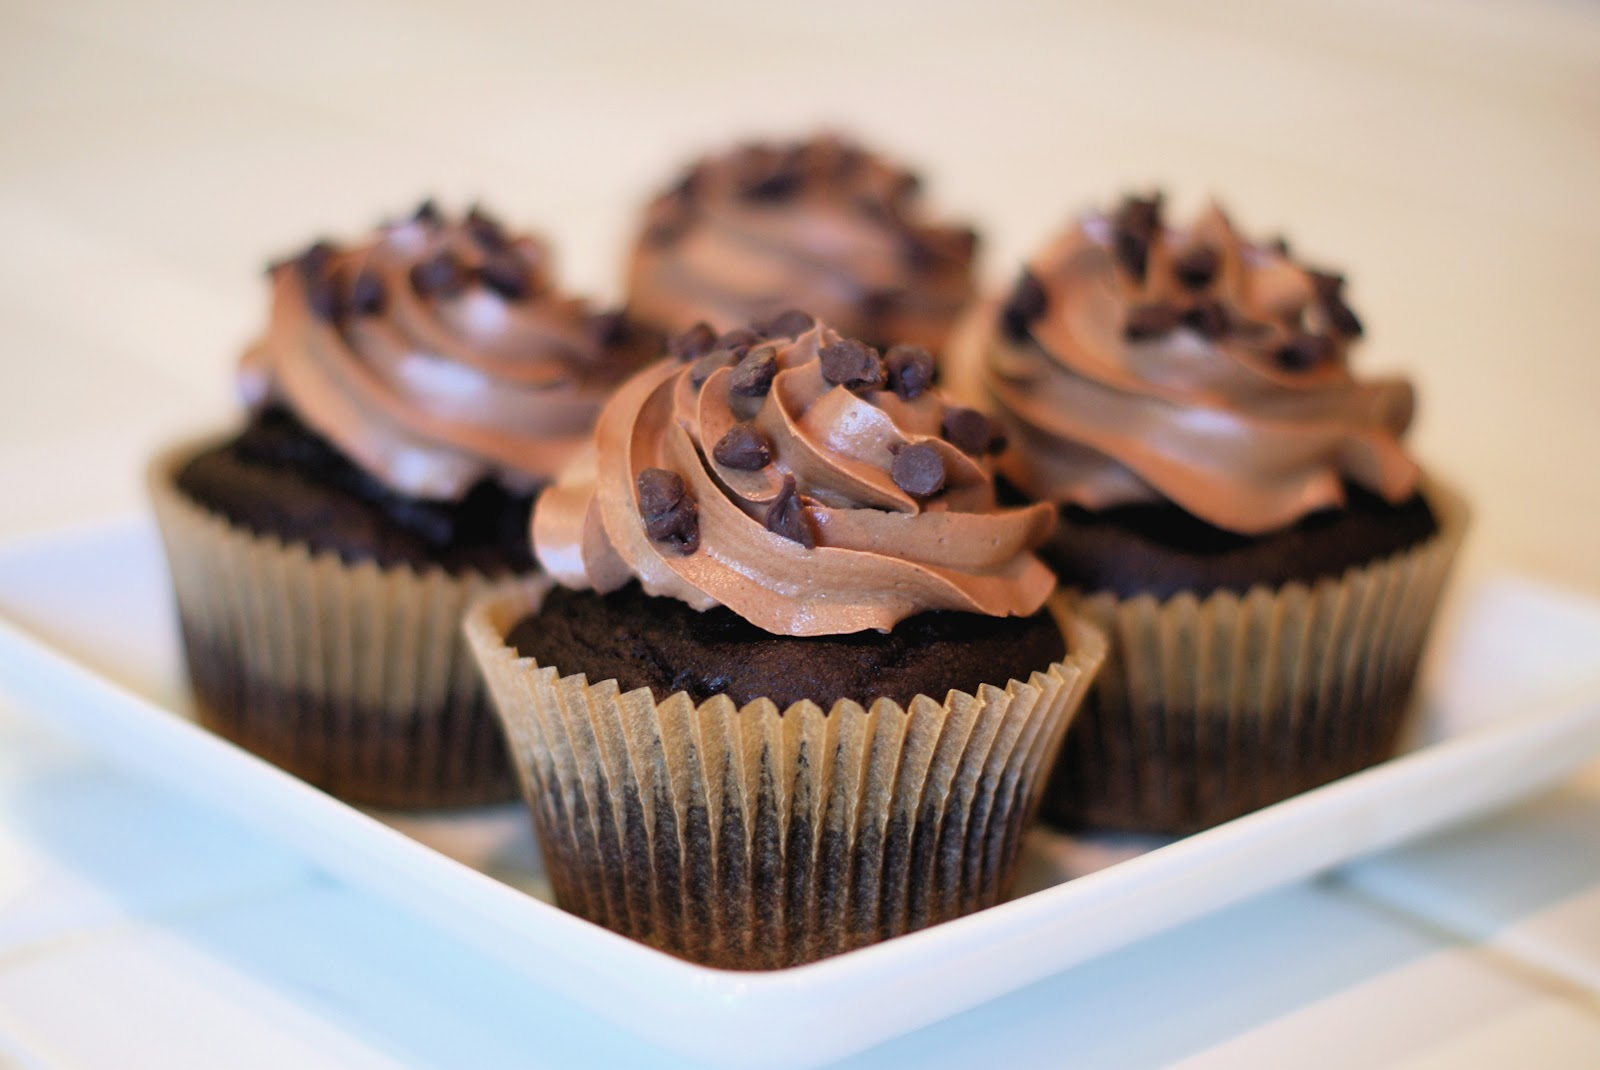 the recipe for chocolate cupcakes